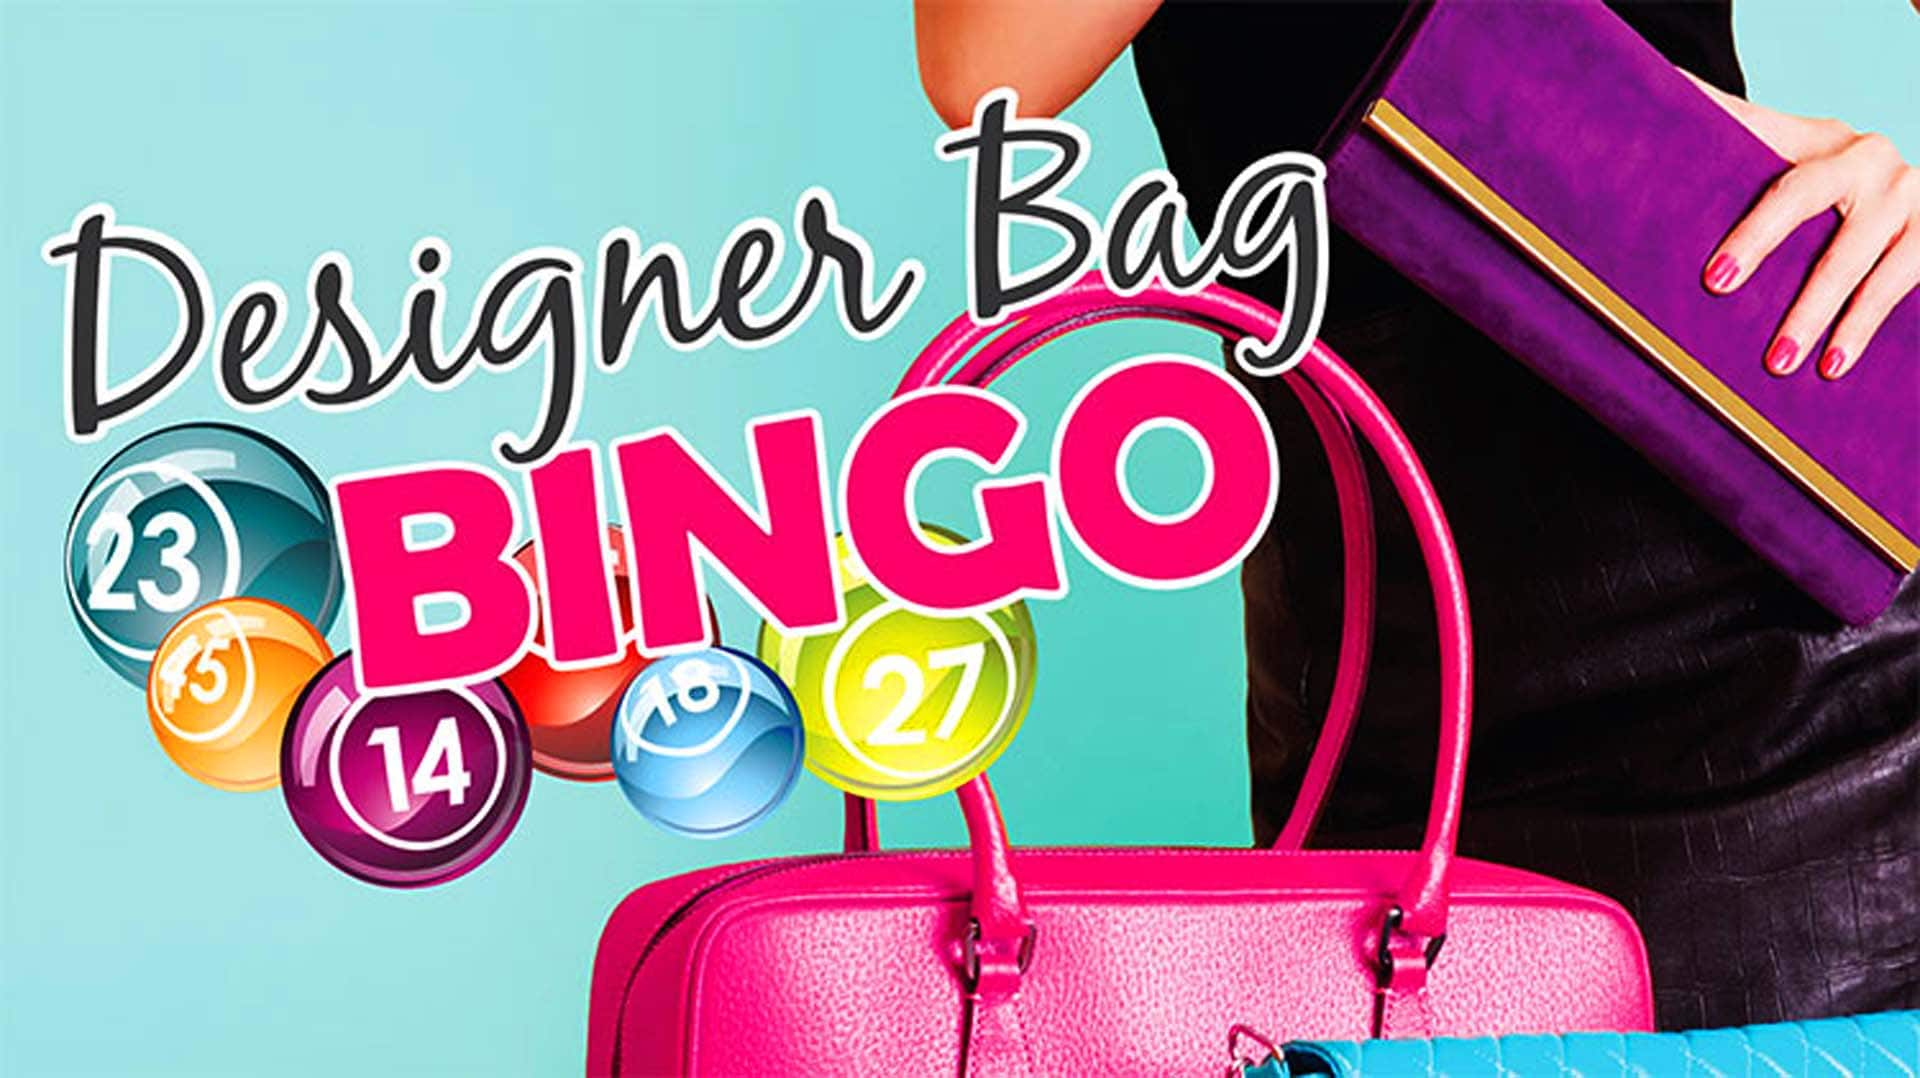 Over $7,000 in great purses up for grabs at Designer Bag Bingo on March 8